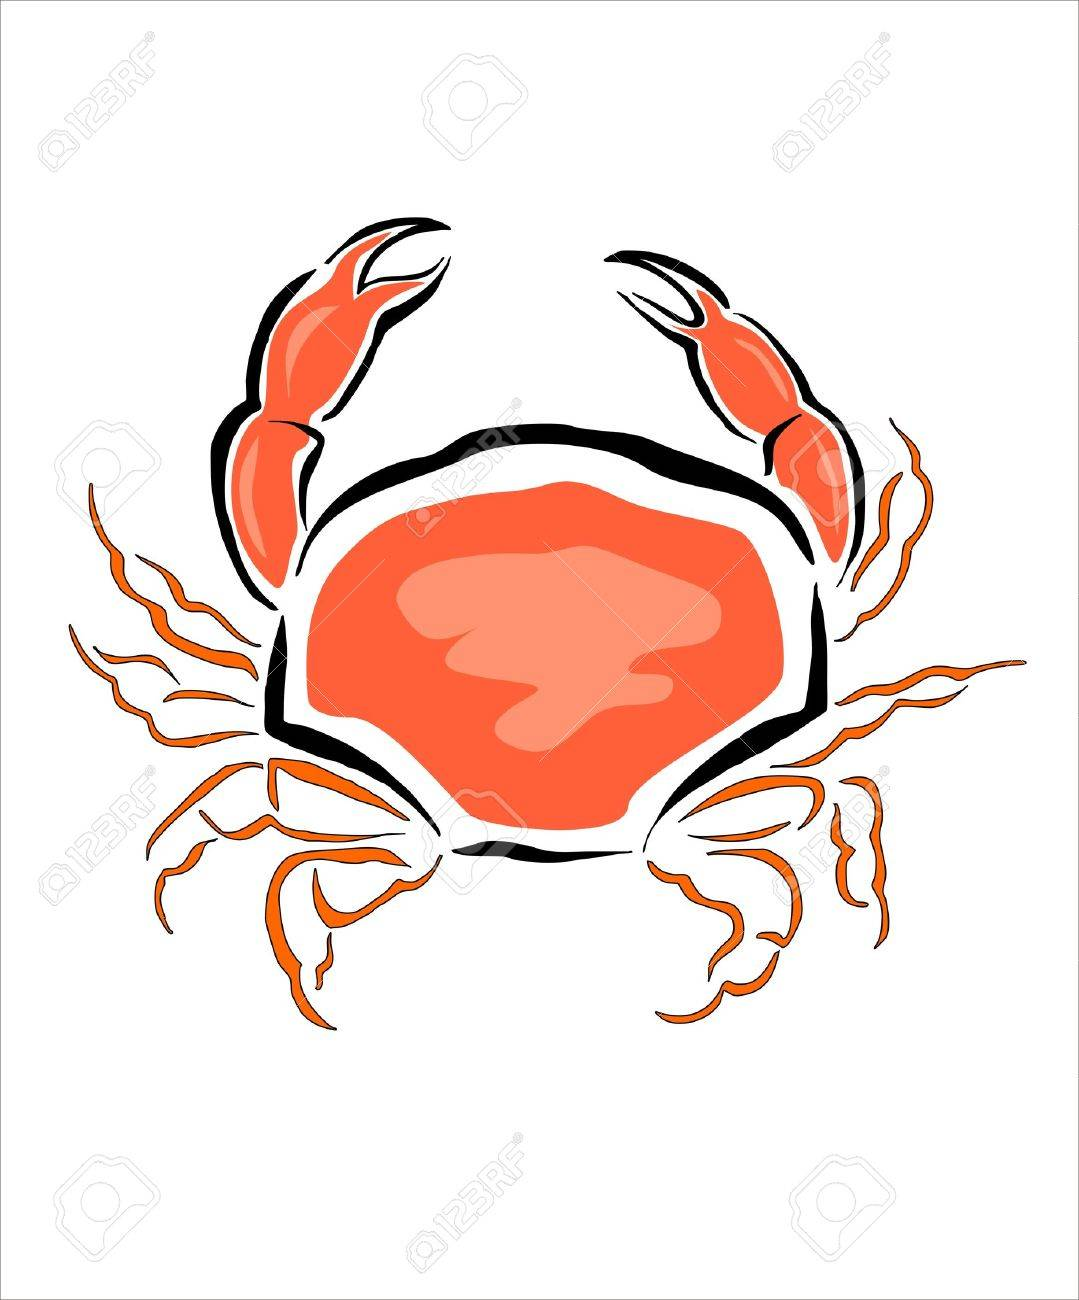 1079x1300 Drawing Of A Crab Royalty Free Cliparts, Vectors, And Stock